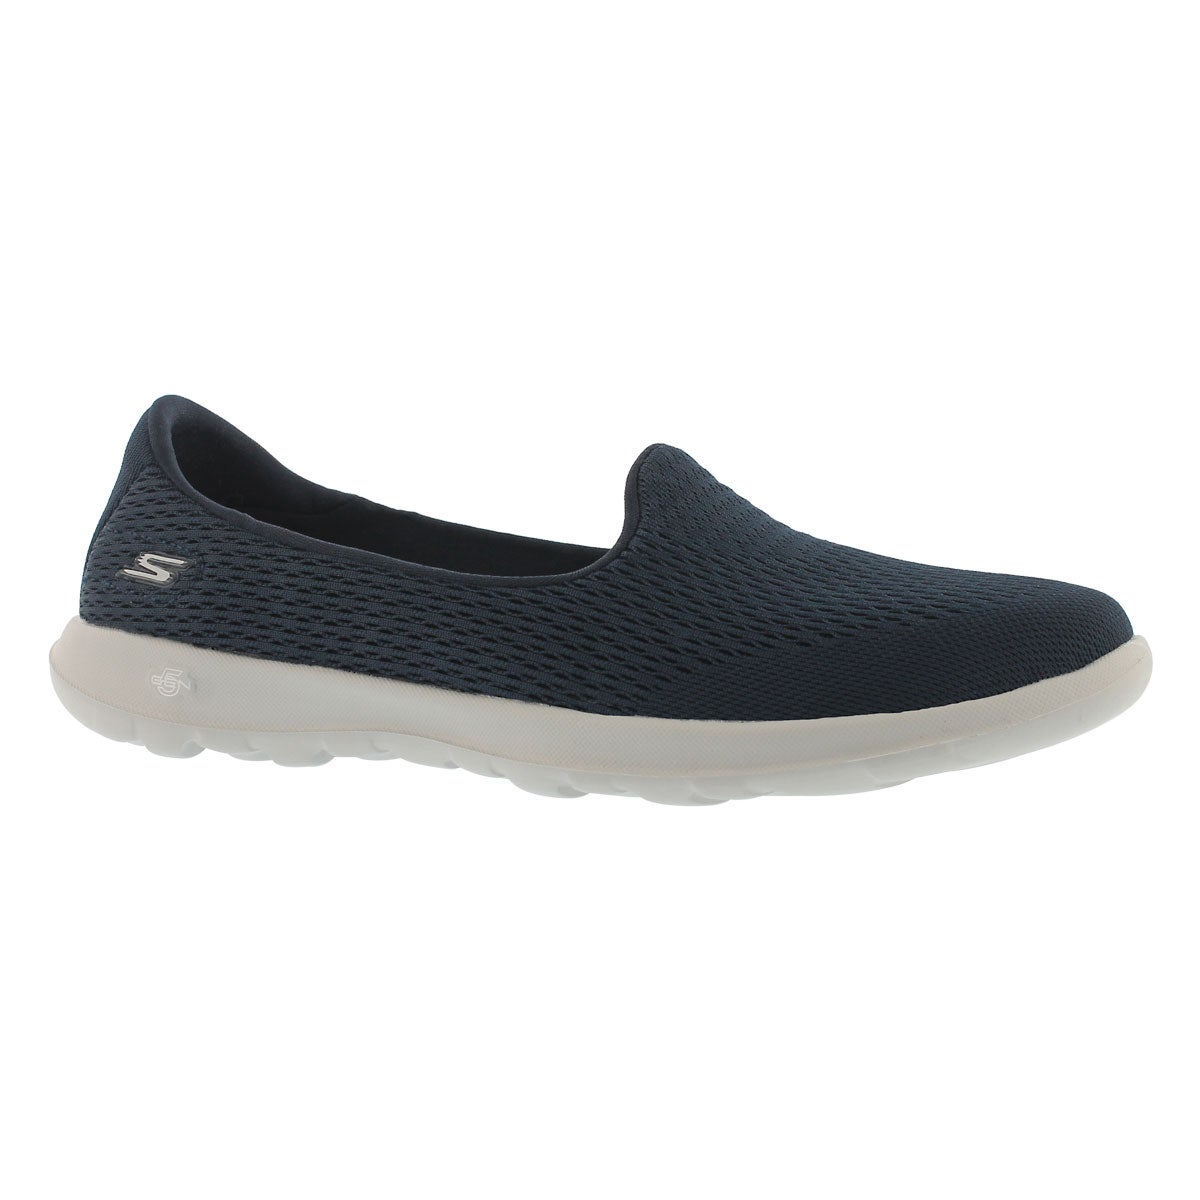 Women's GOwalk LITE navy/grey slip on shoes